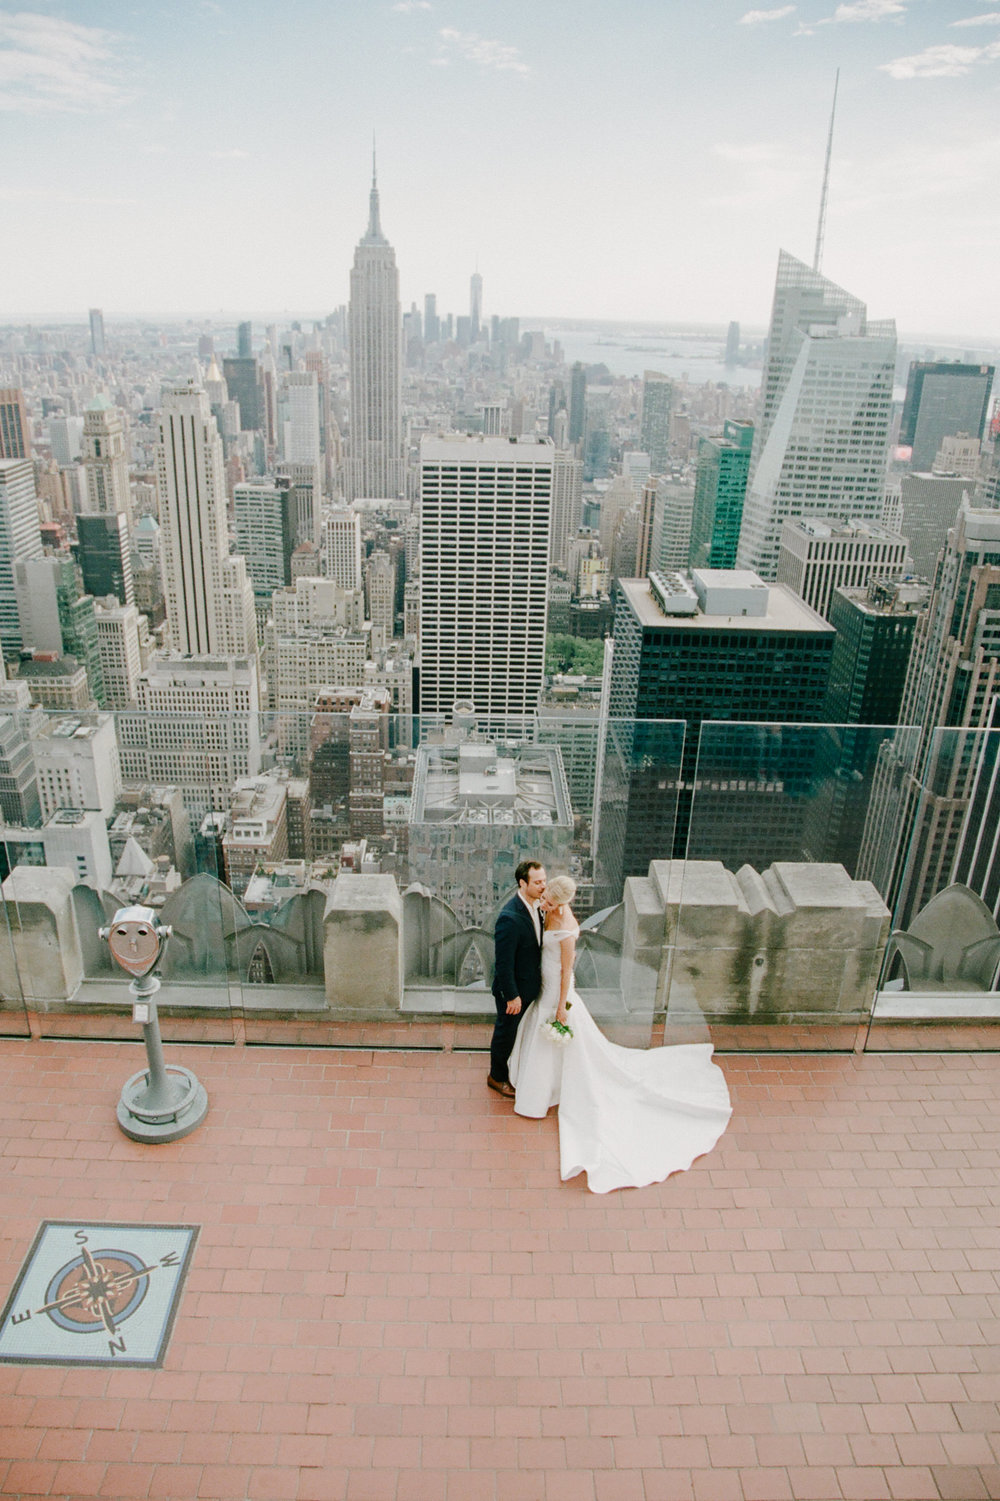 Intimate-NYC_wedding_ by Tanya Isaeva-169.jpg